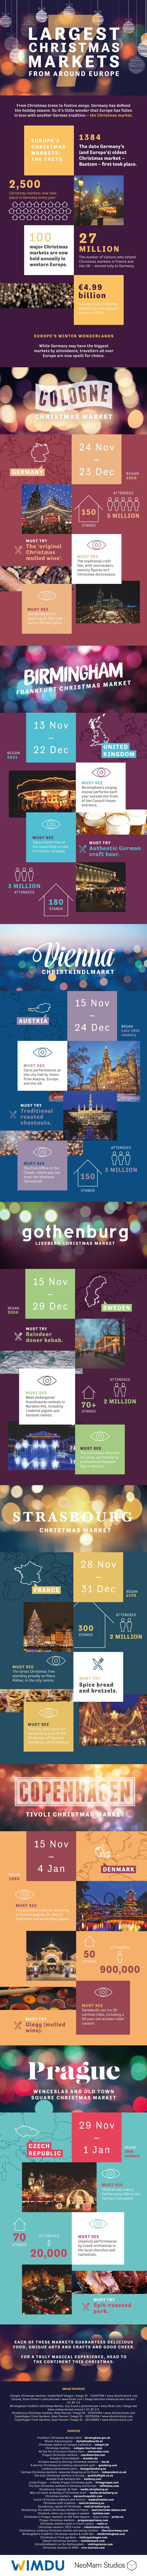 7 Largest Christmas Markets From Around Europe